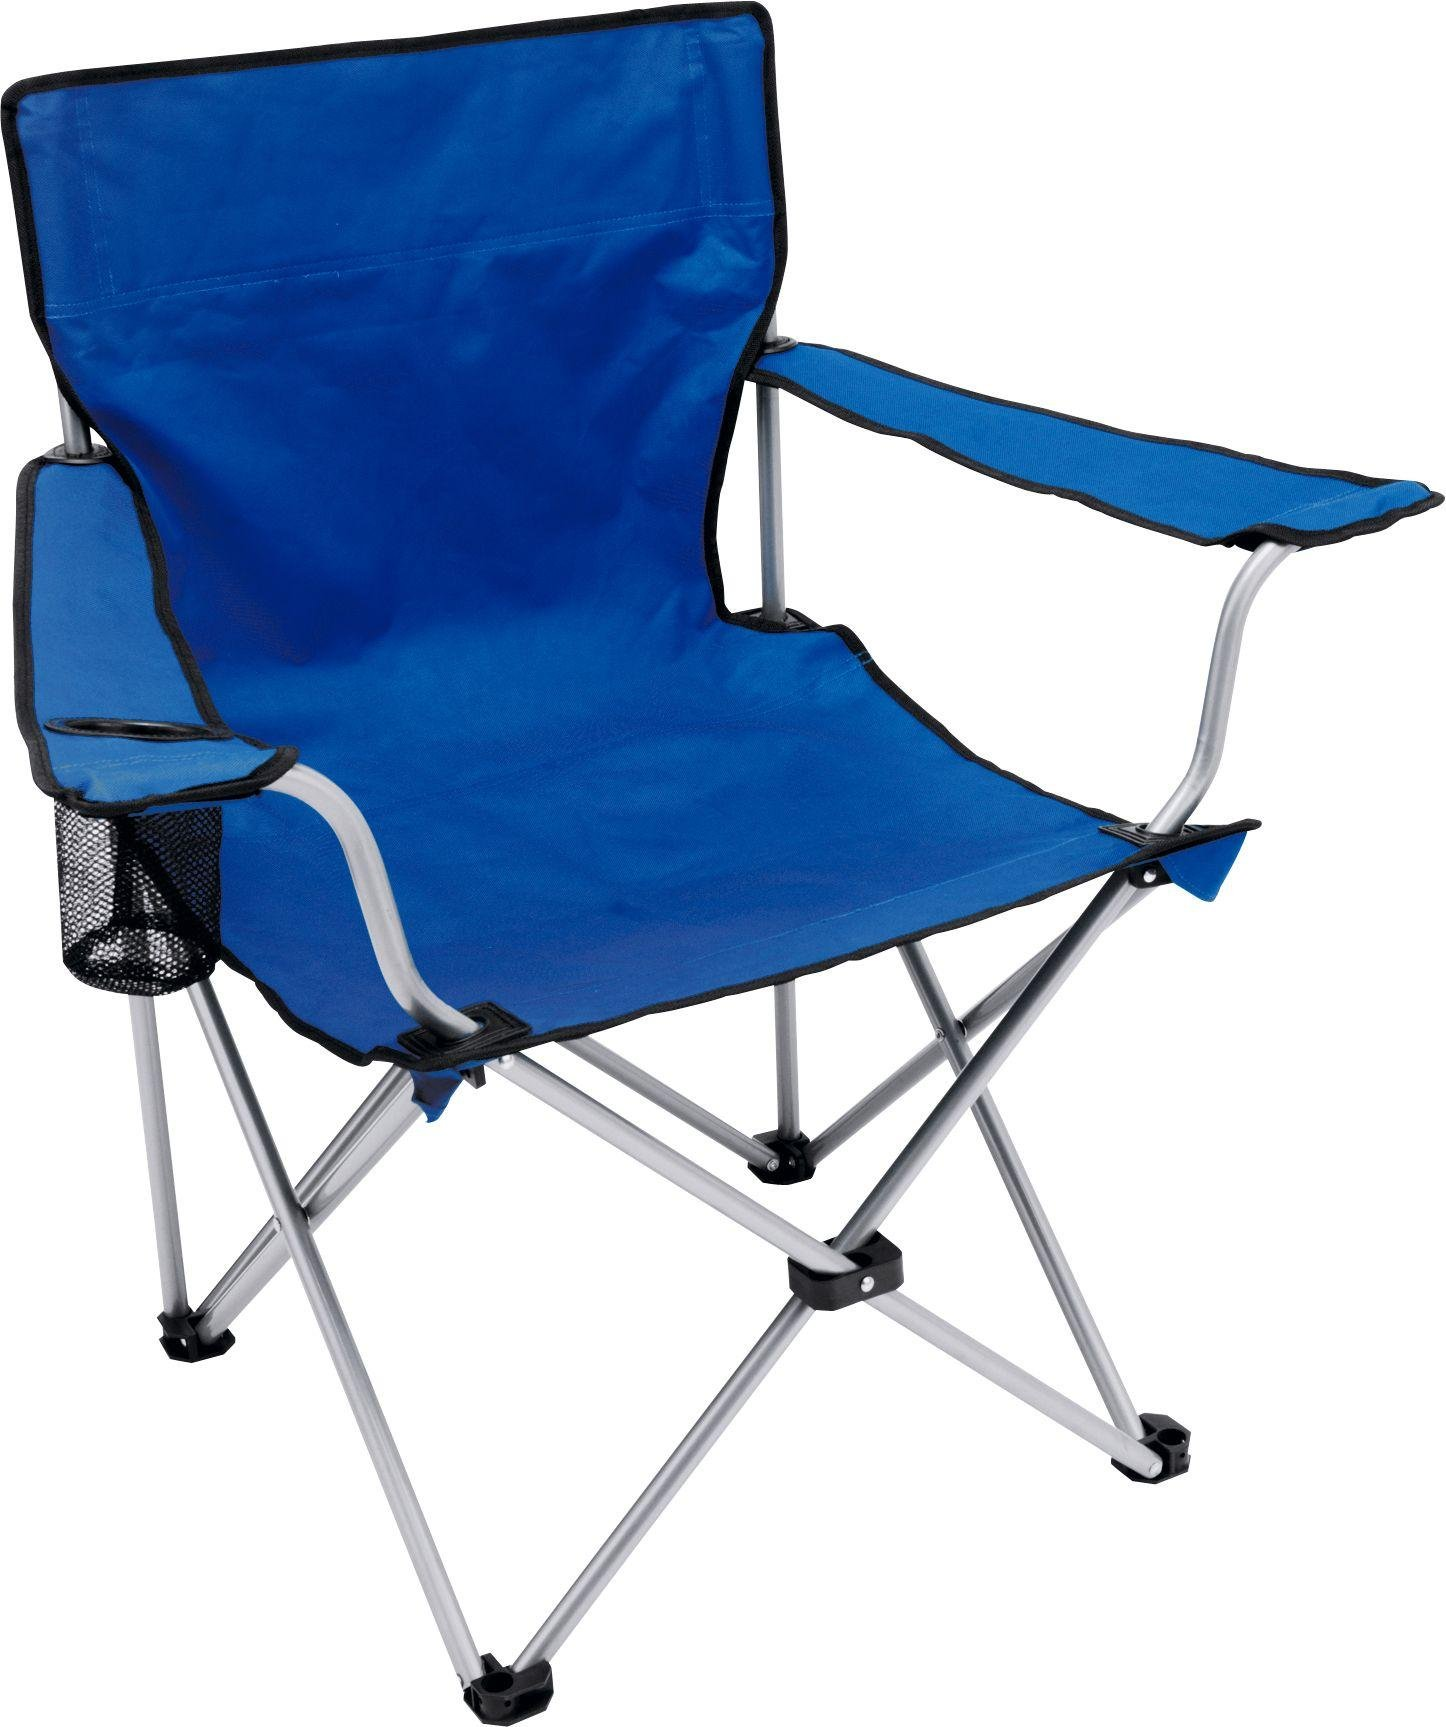 Image of Steel Folding Camping Chair